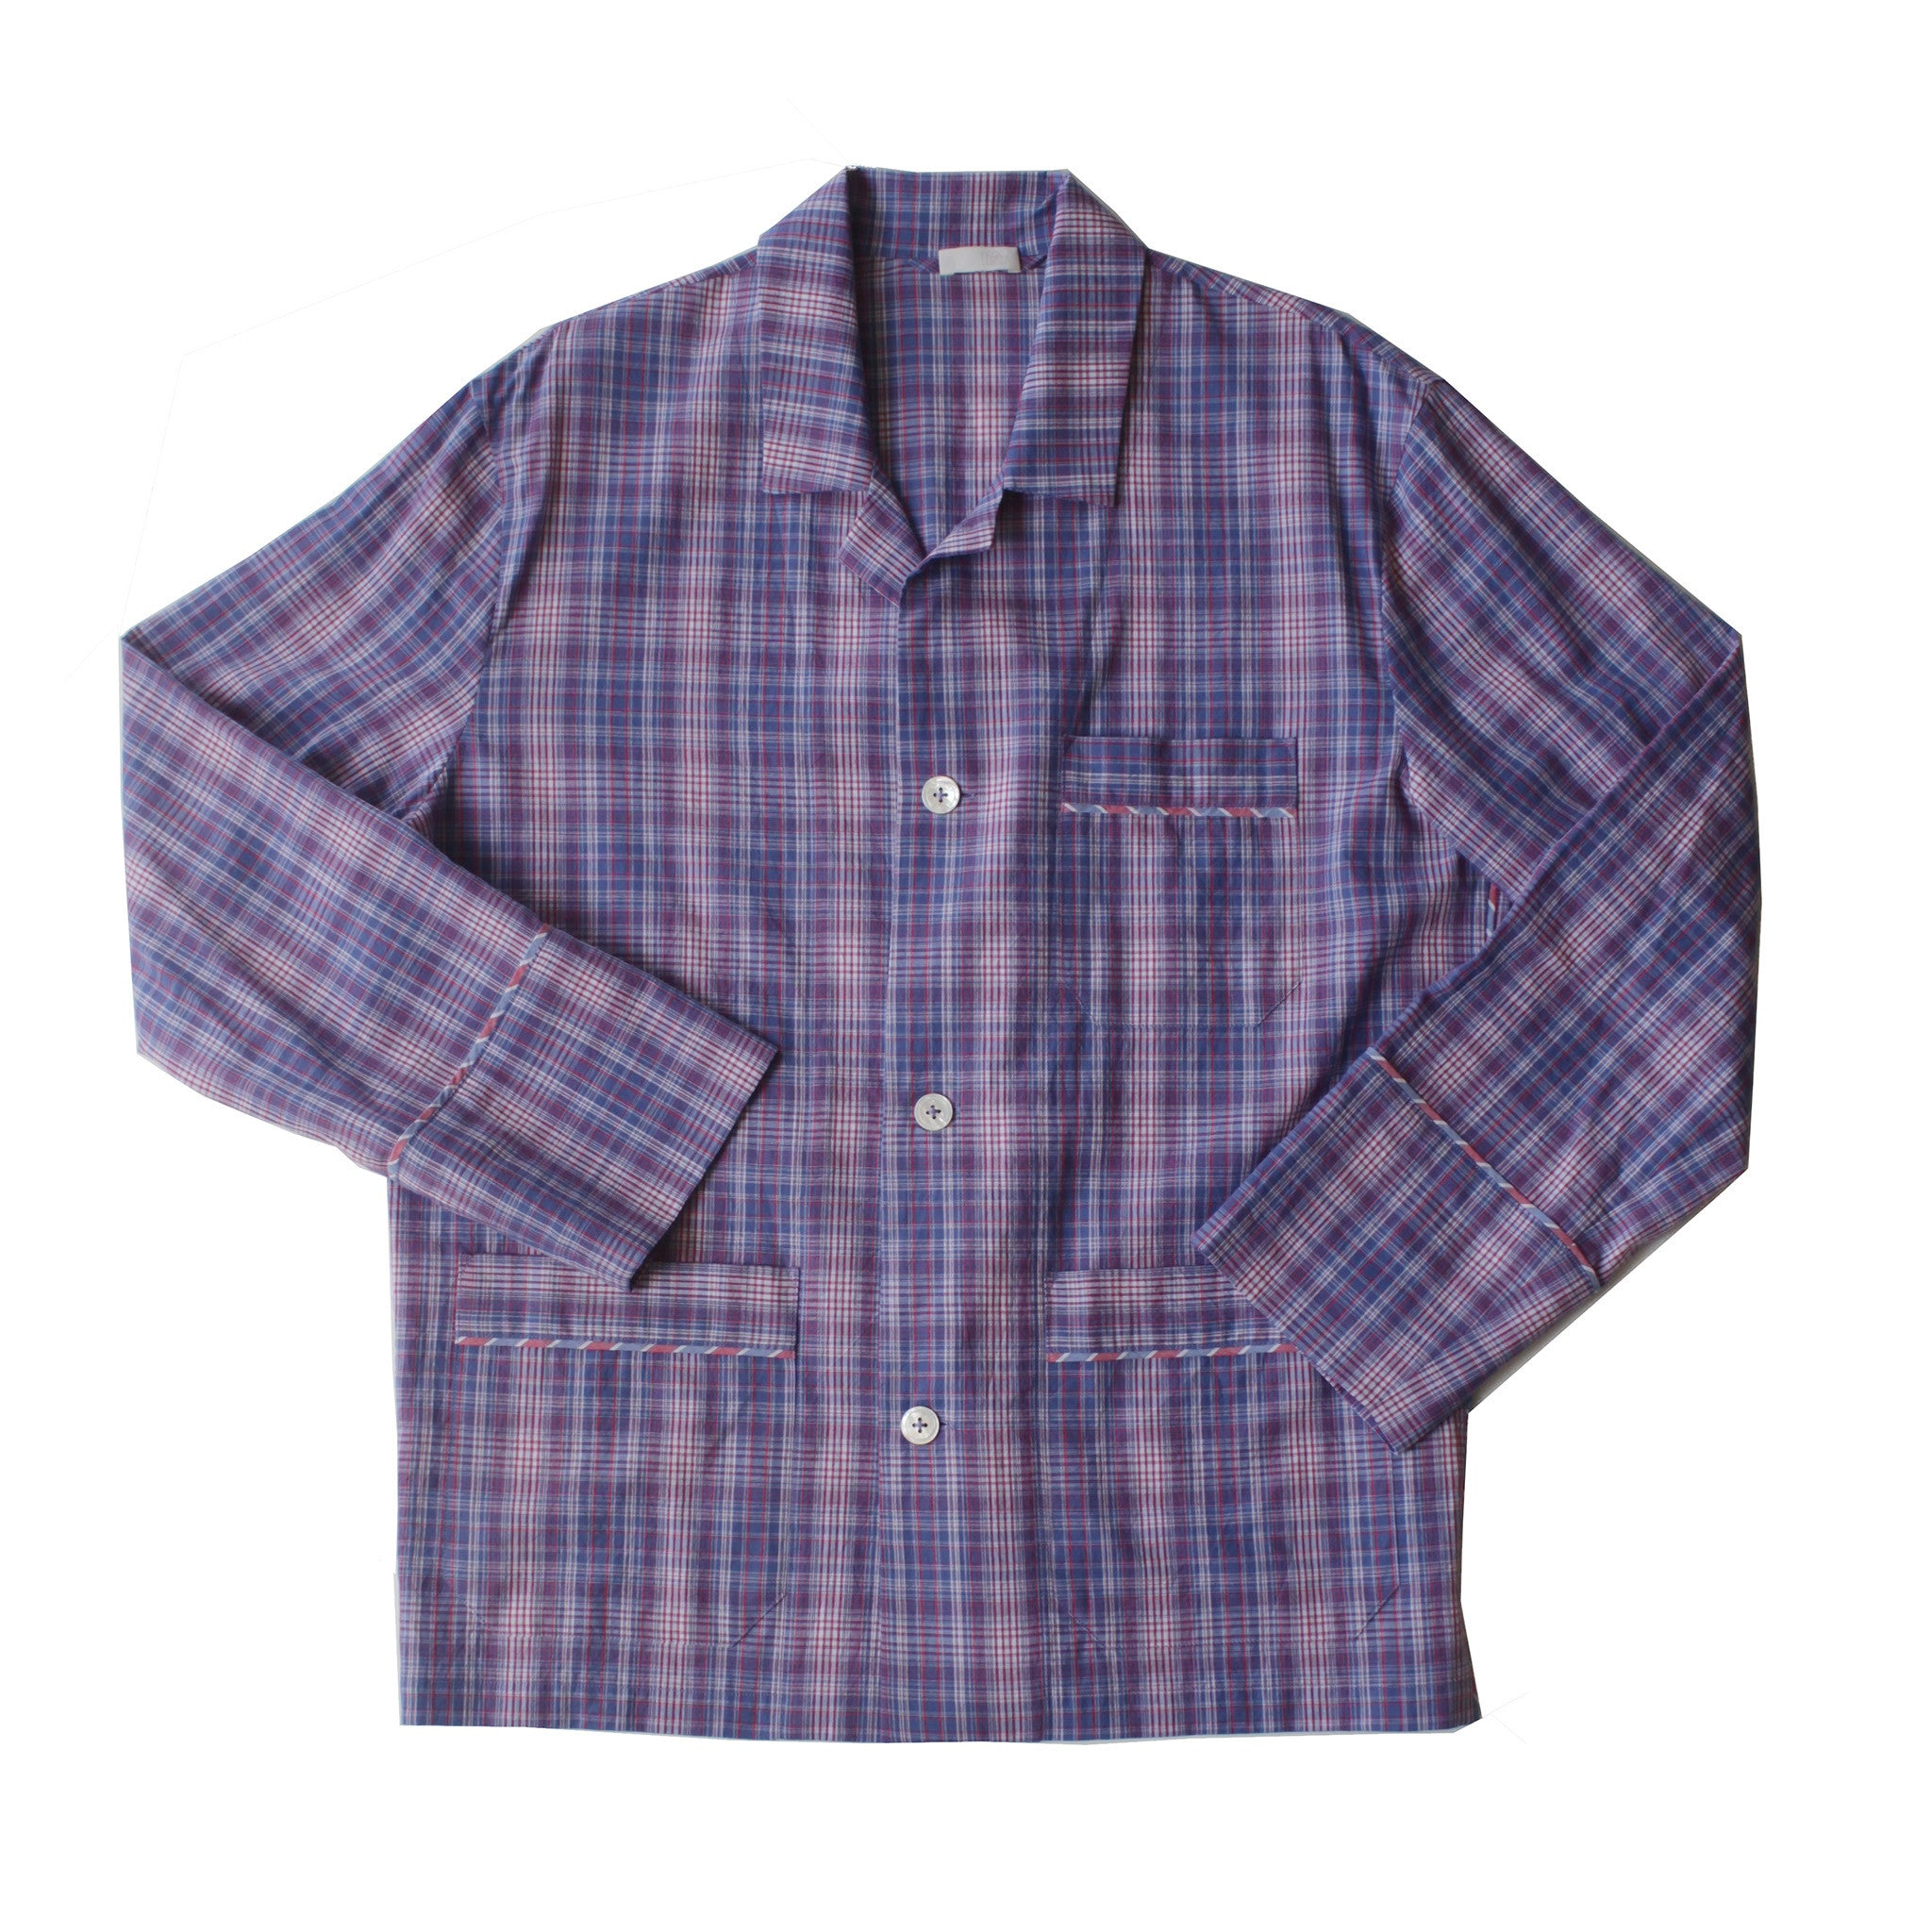 Hyperion Pajama Shirt in Blue Plaid Italian Cotton